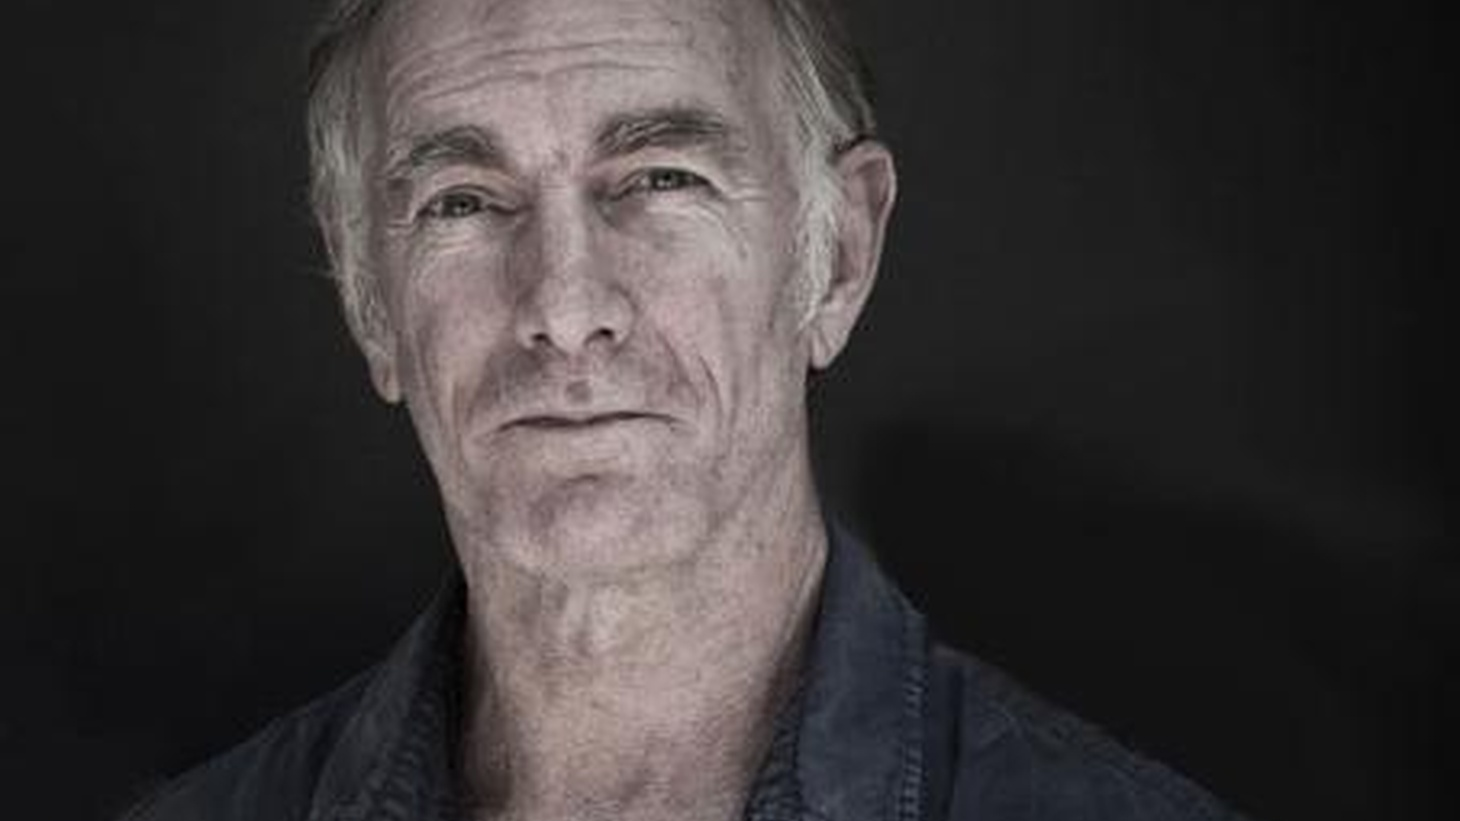 John Sayles on how a writer gathers knowledge, the language, the unusual perspectives and the humanity to illuminate the whole arc of our history...